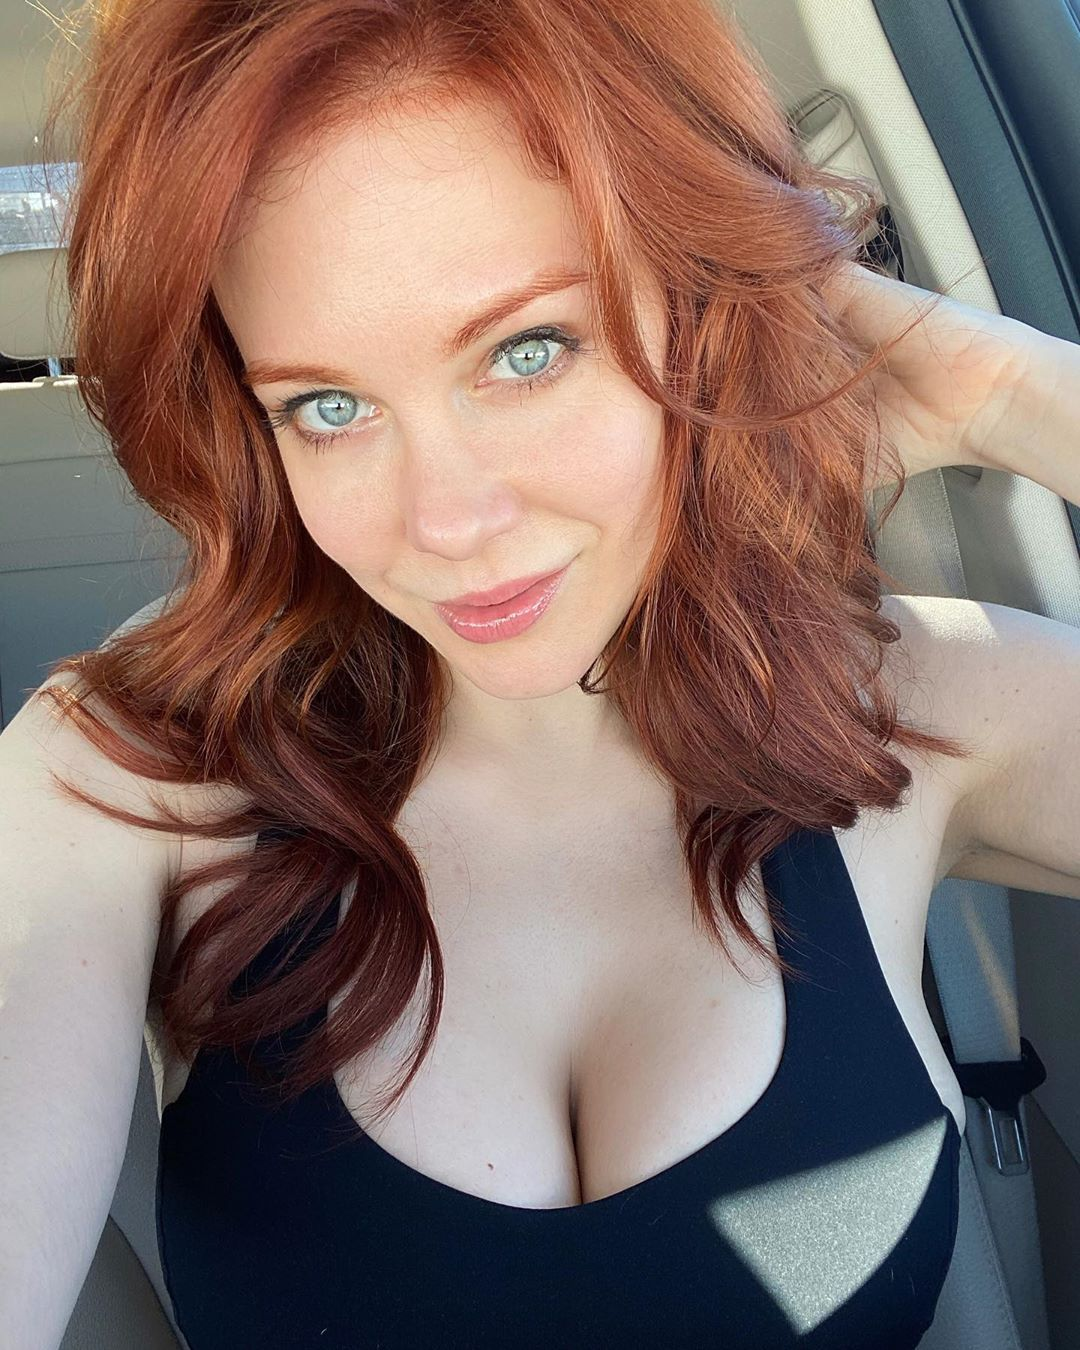 'Boy Meets World' Star Maitland Ward's ~ Sexiest ~ Moments Are For Hot to Handle